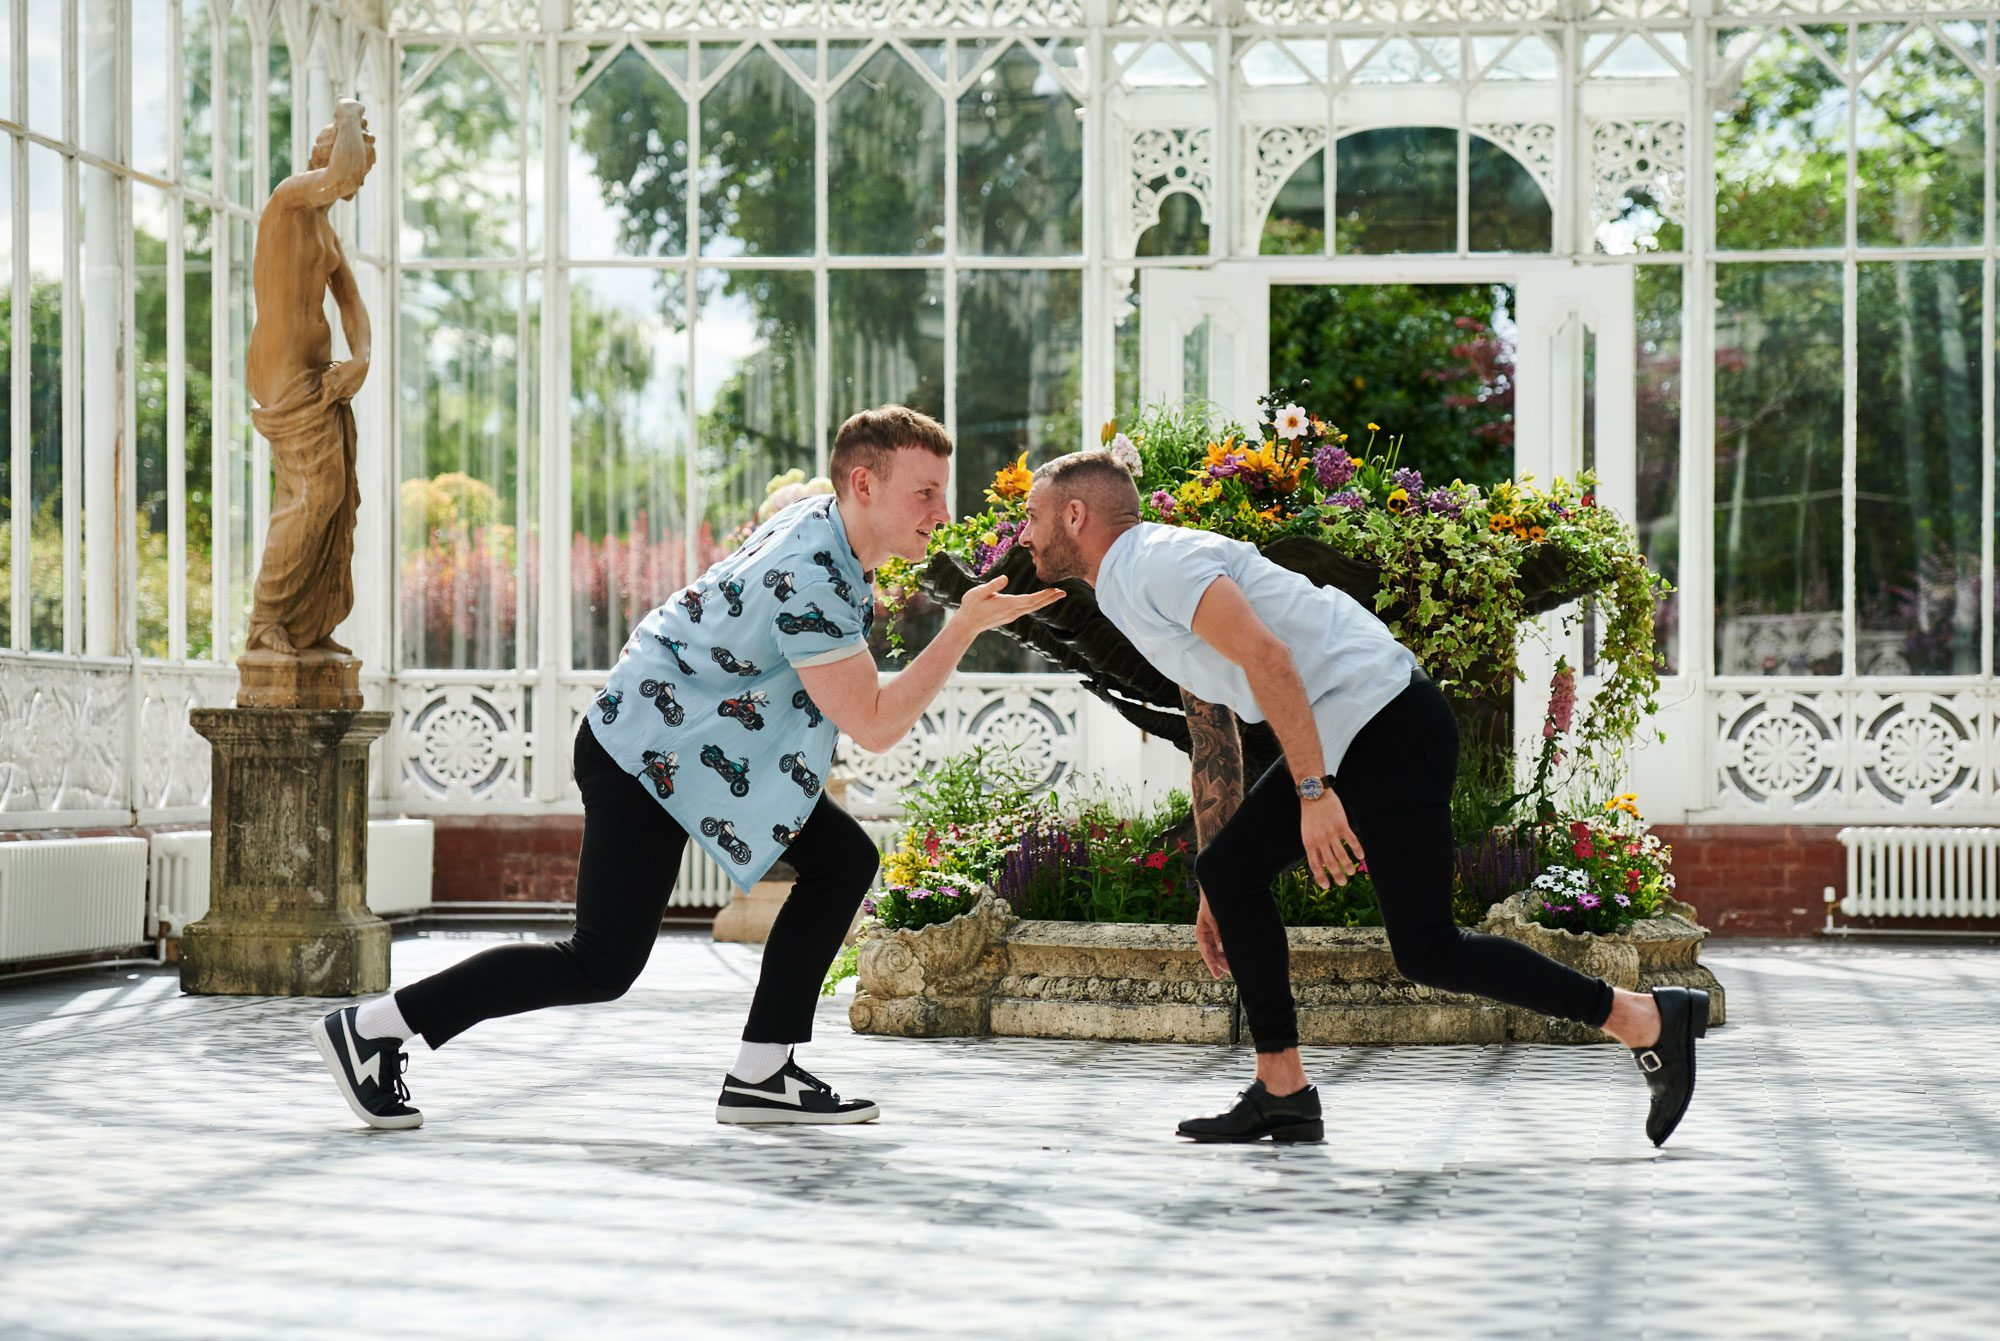 Two men are dancing towards each other in a glass and metal conservatory which has a stone figure and some flowers behind them. They are both wearing jeans and skirts, and are smiling